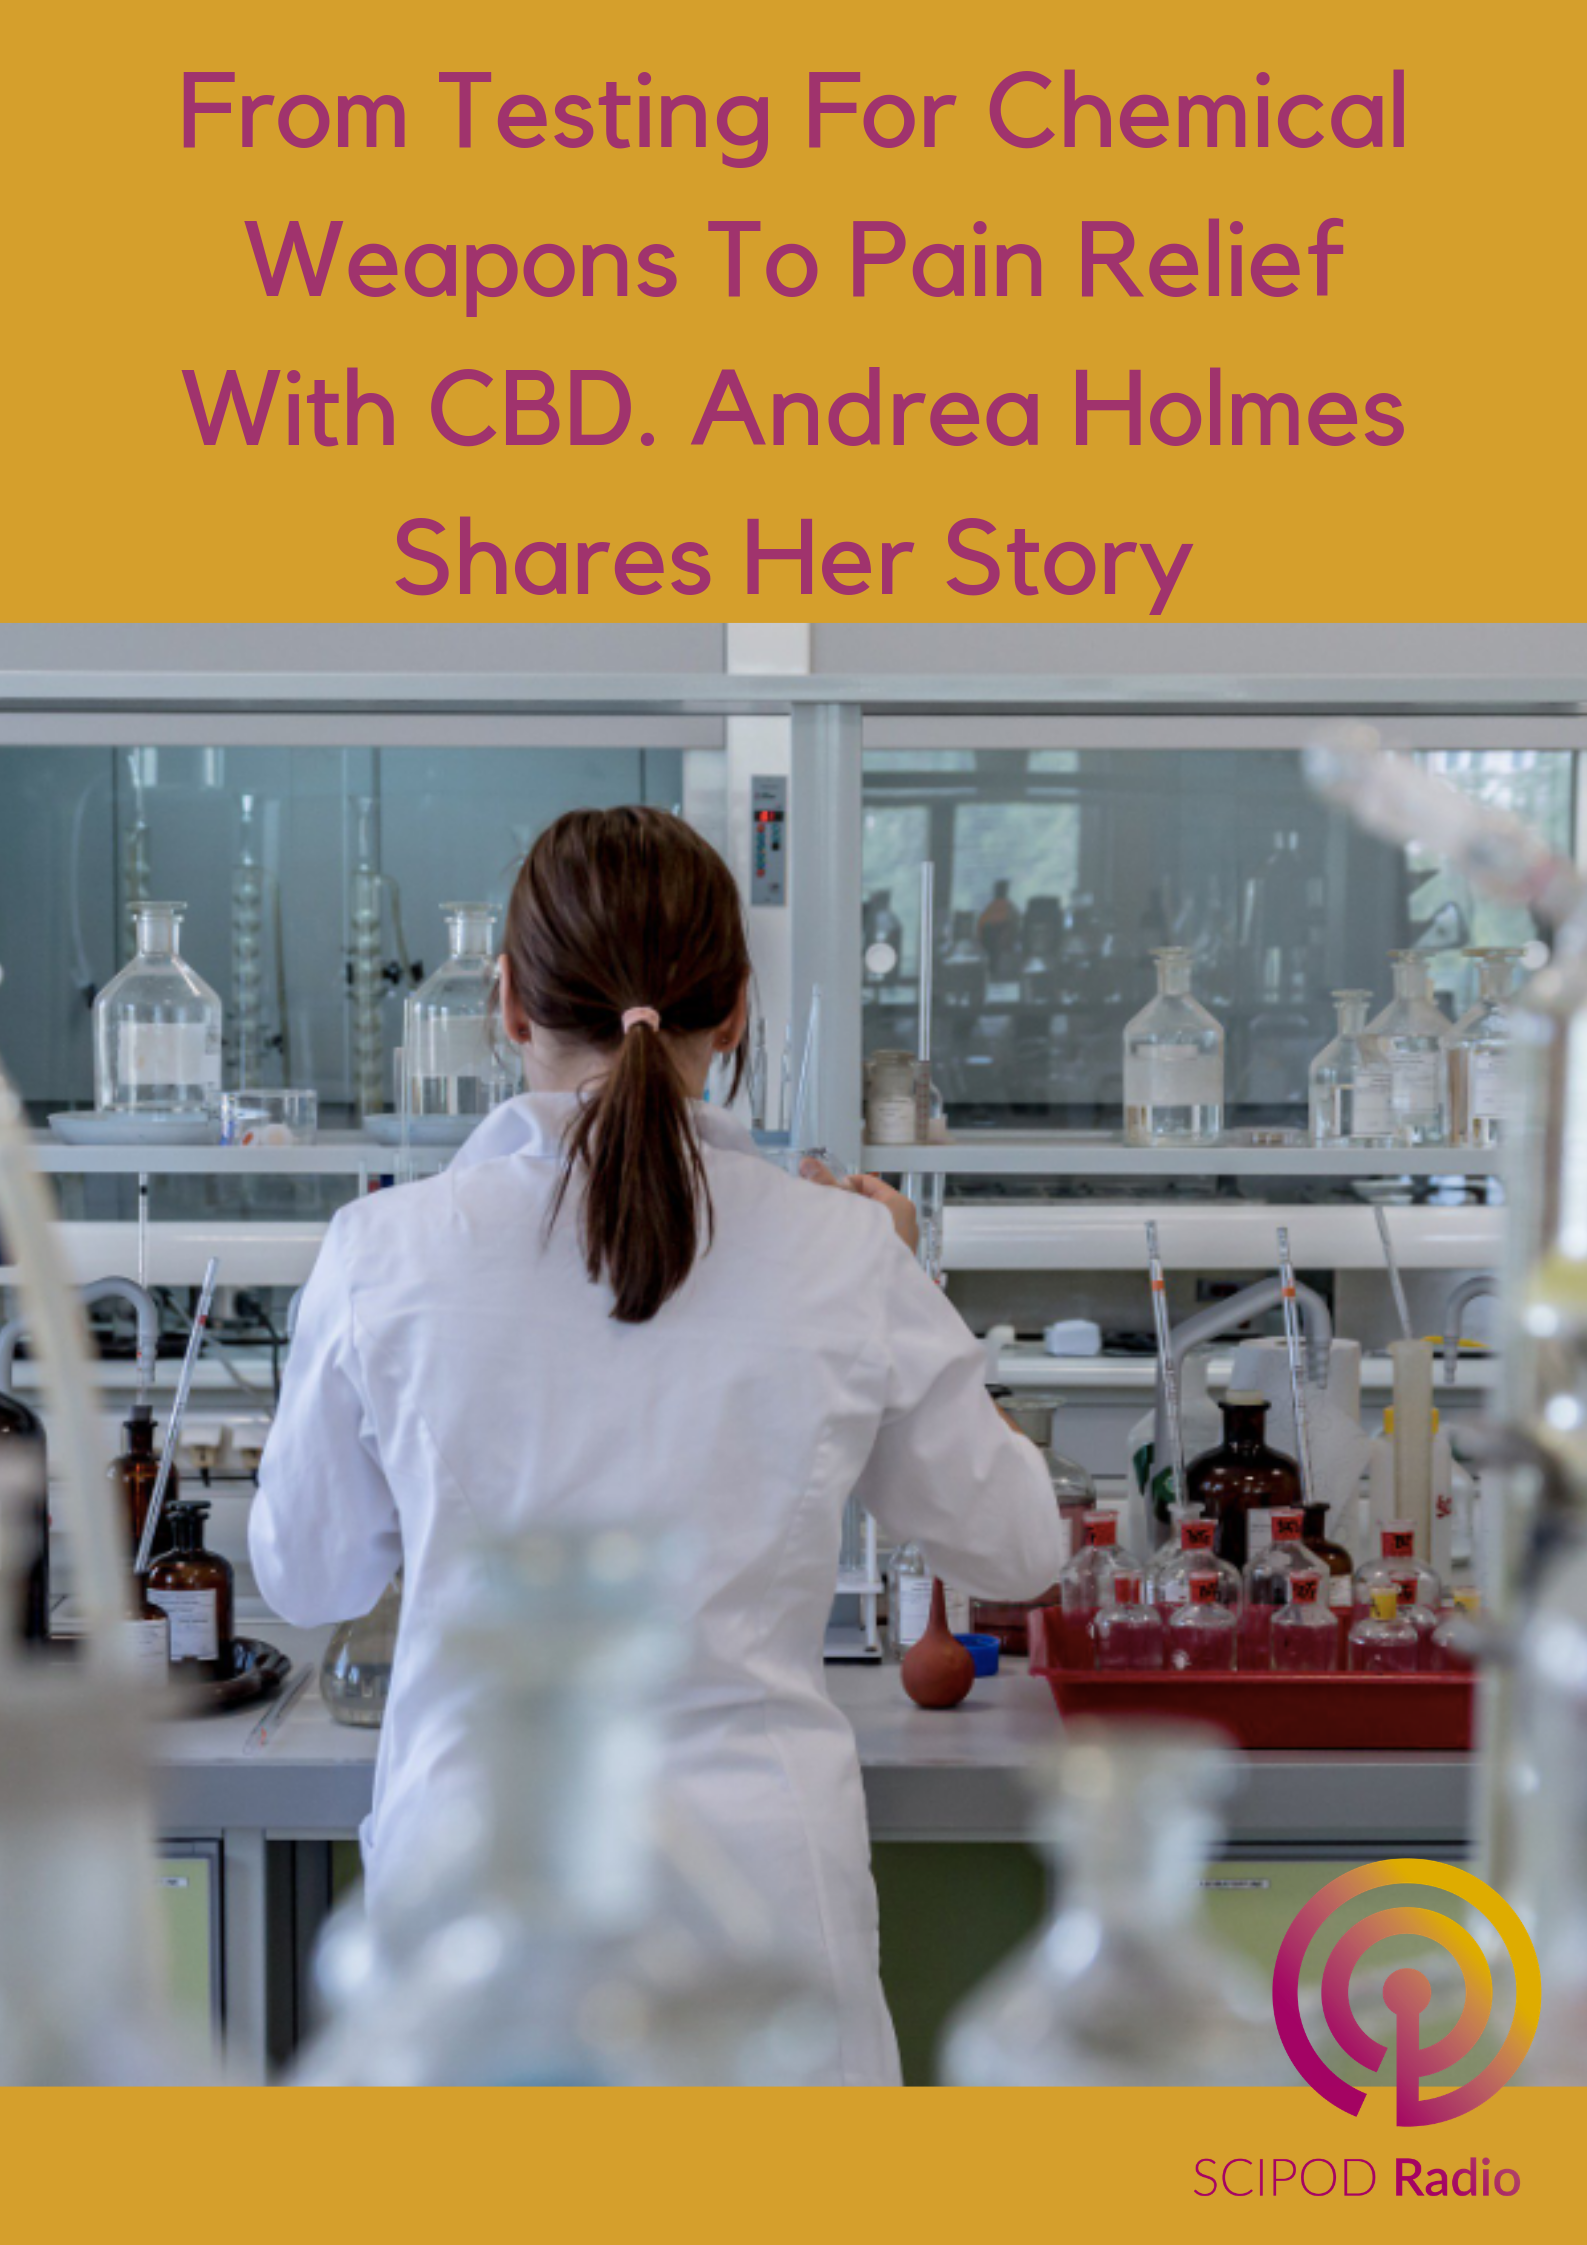 From Testing For Chemical Weapons To Pain Relief With CBD. Andrea Holmes Shares Her Story